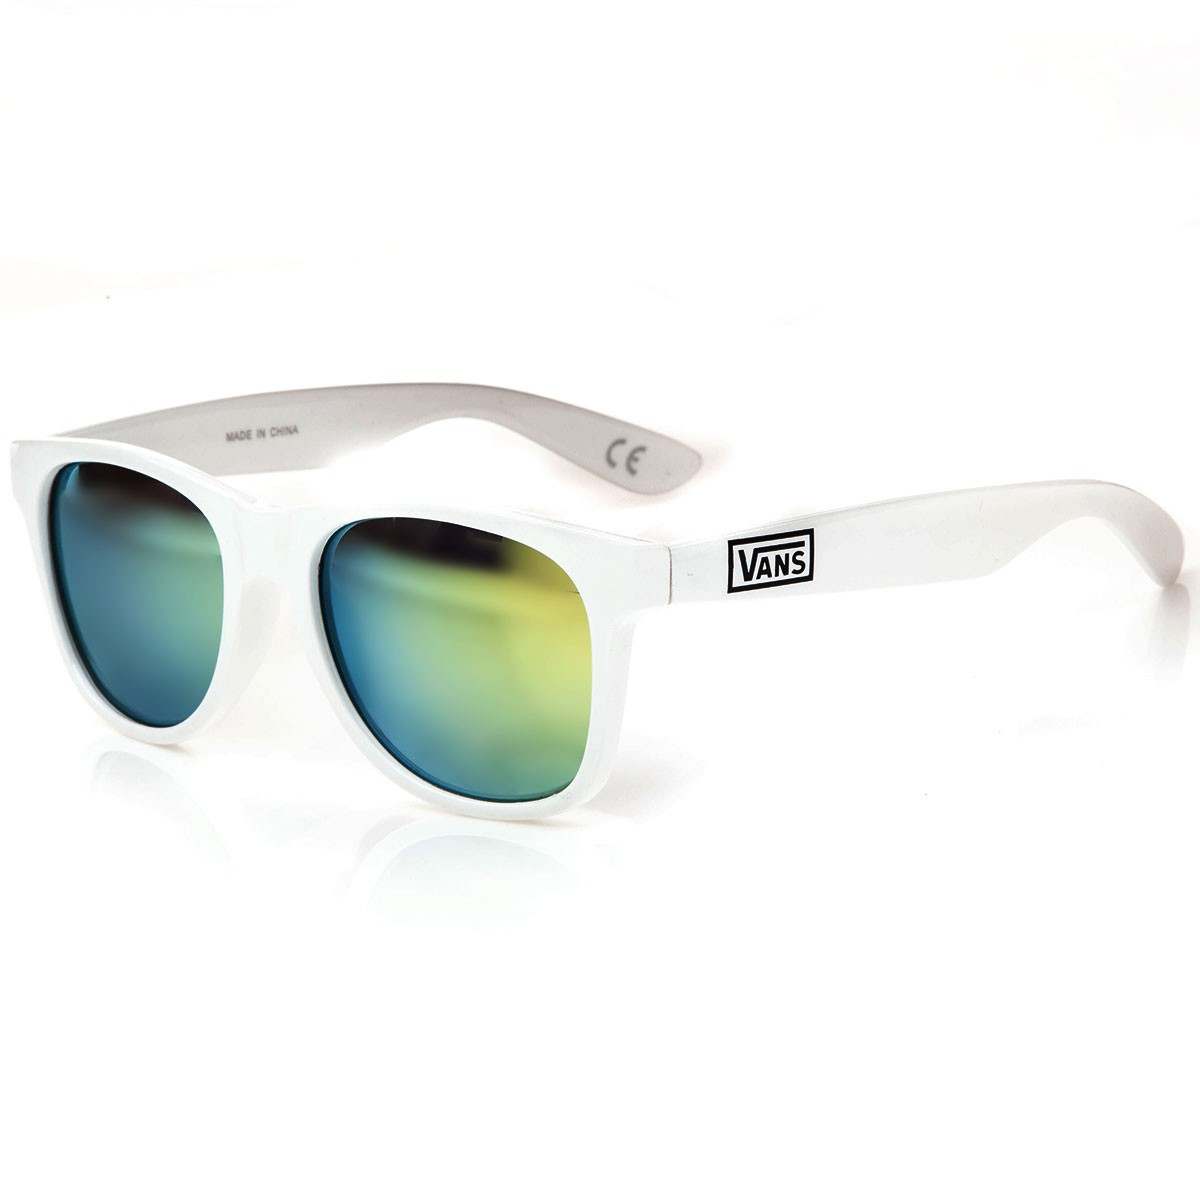 Vans Spicoli 4 Sunglasses - White Mirror Green